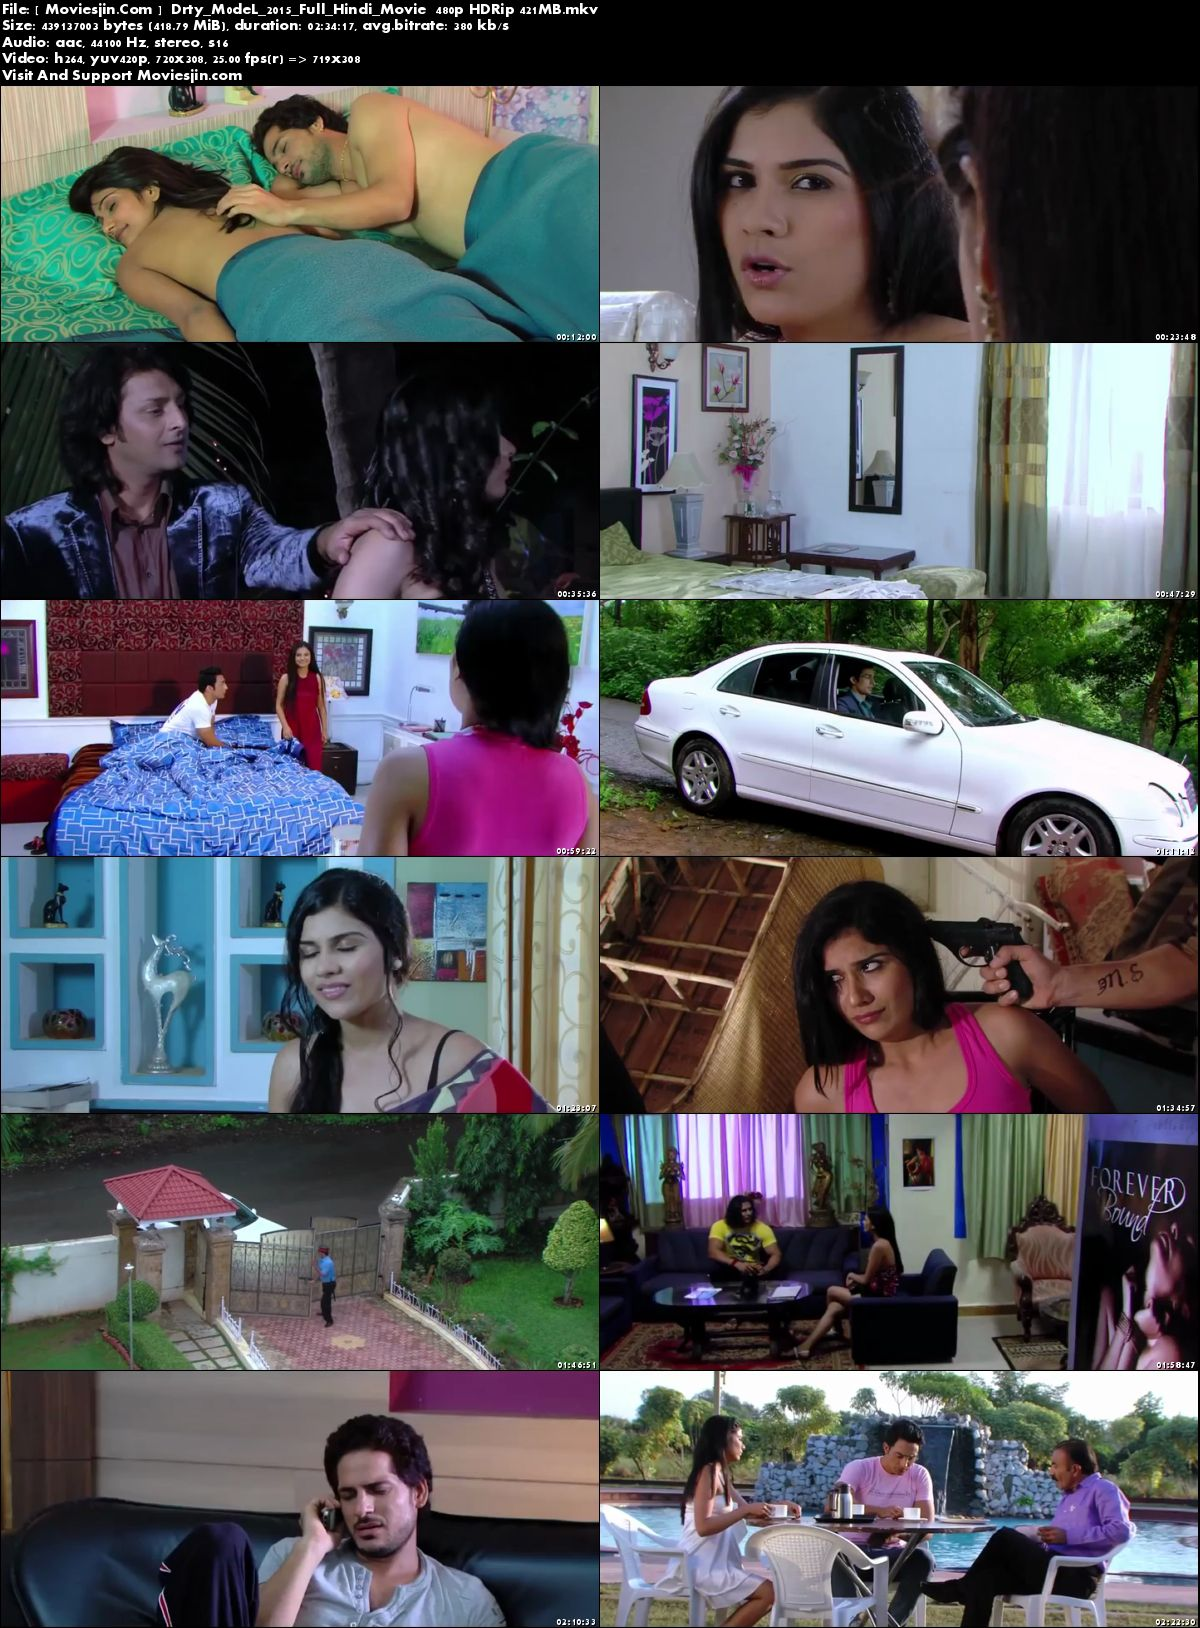 Watch Online Dirty Model 2015 Movie 999MB Hindi HD-Rip 720p Download Full Movie Download mkvcage